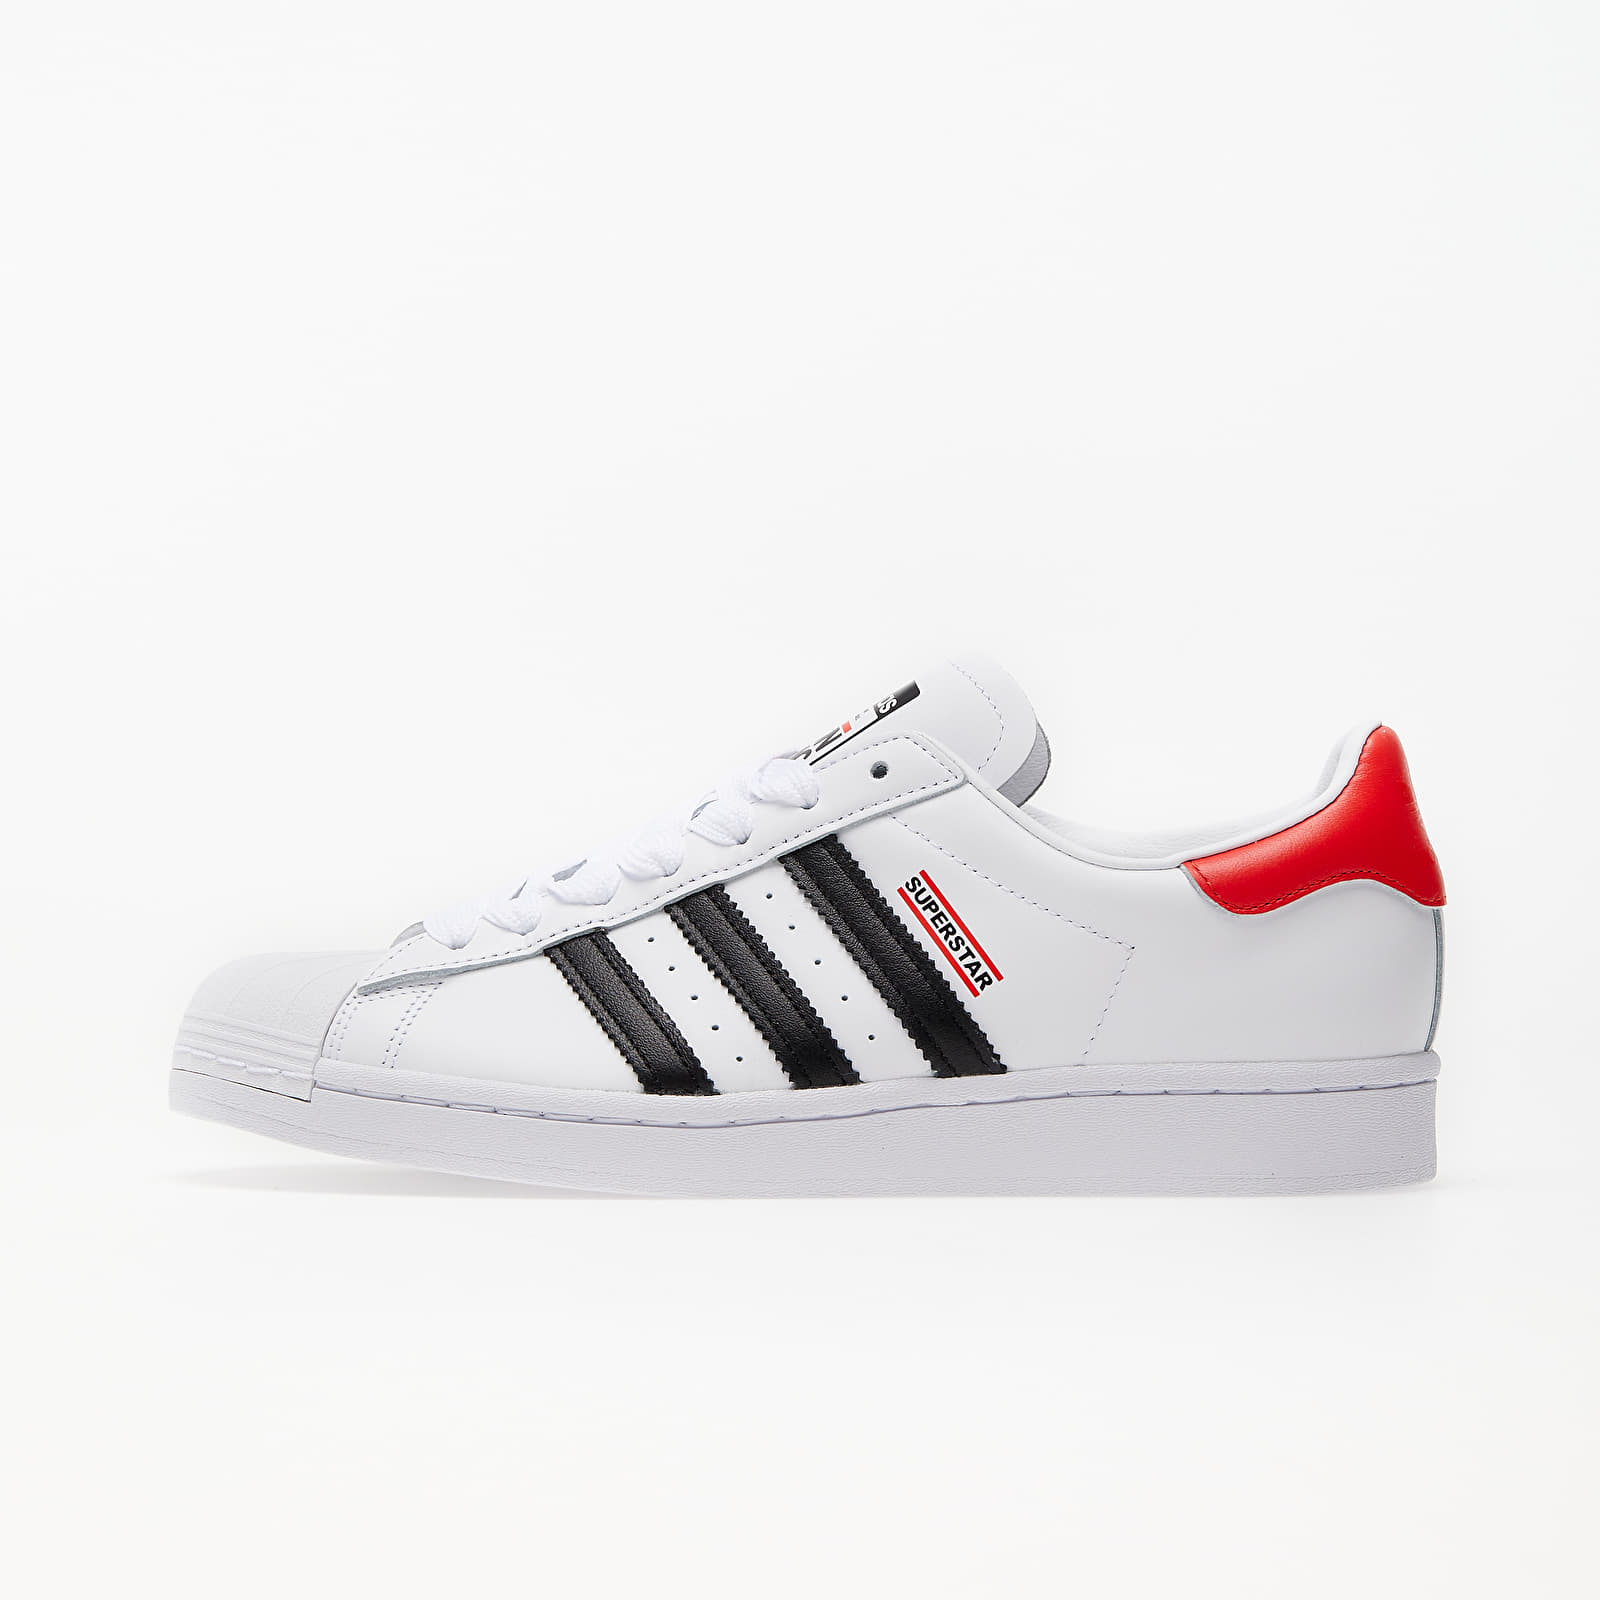 Zapatillas Hombre adidas x RUN DMC Superstar 50 Ftw White/ Core Black/ Hi-Res Red